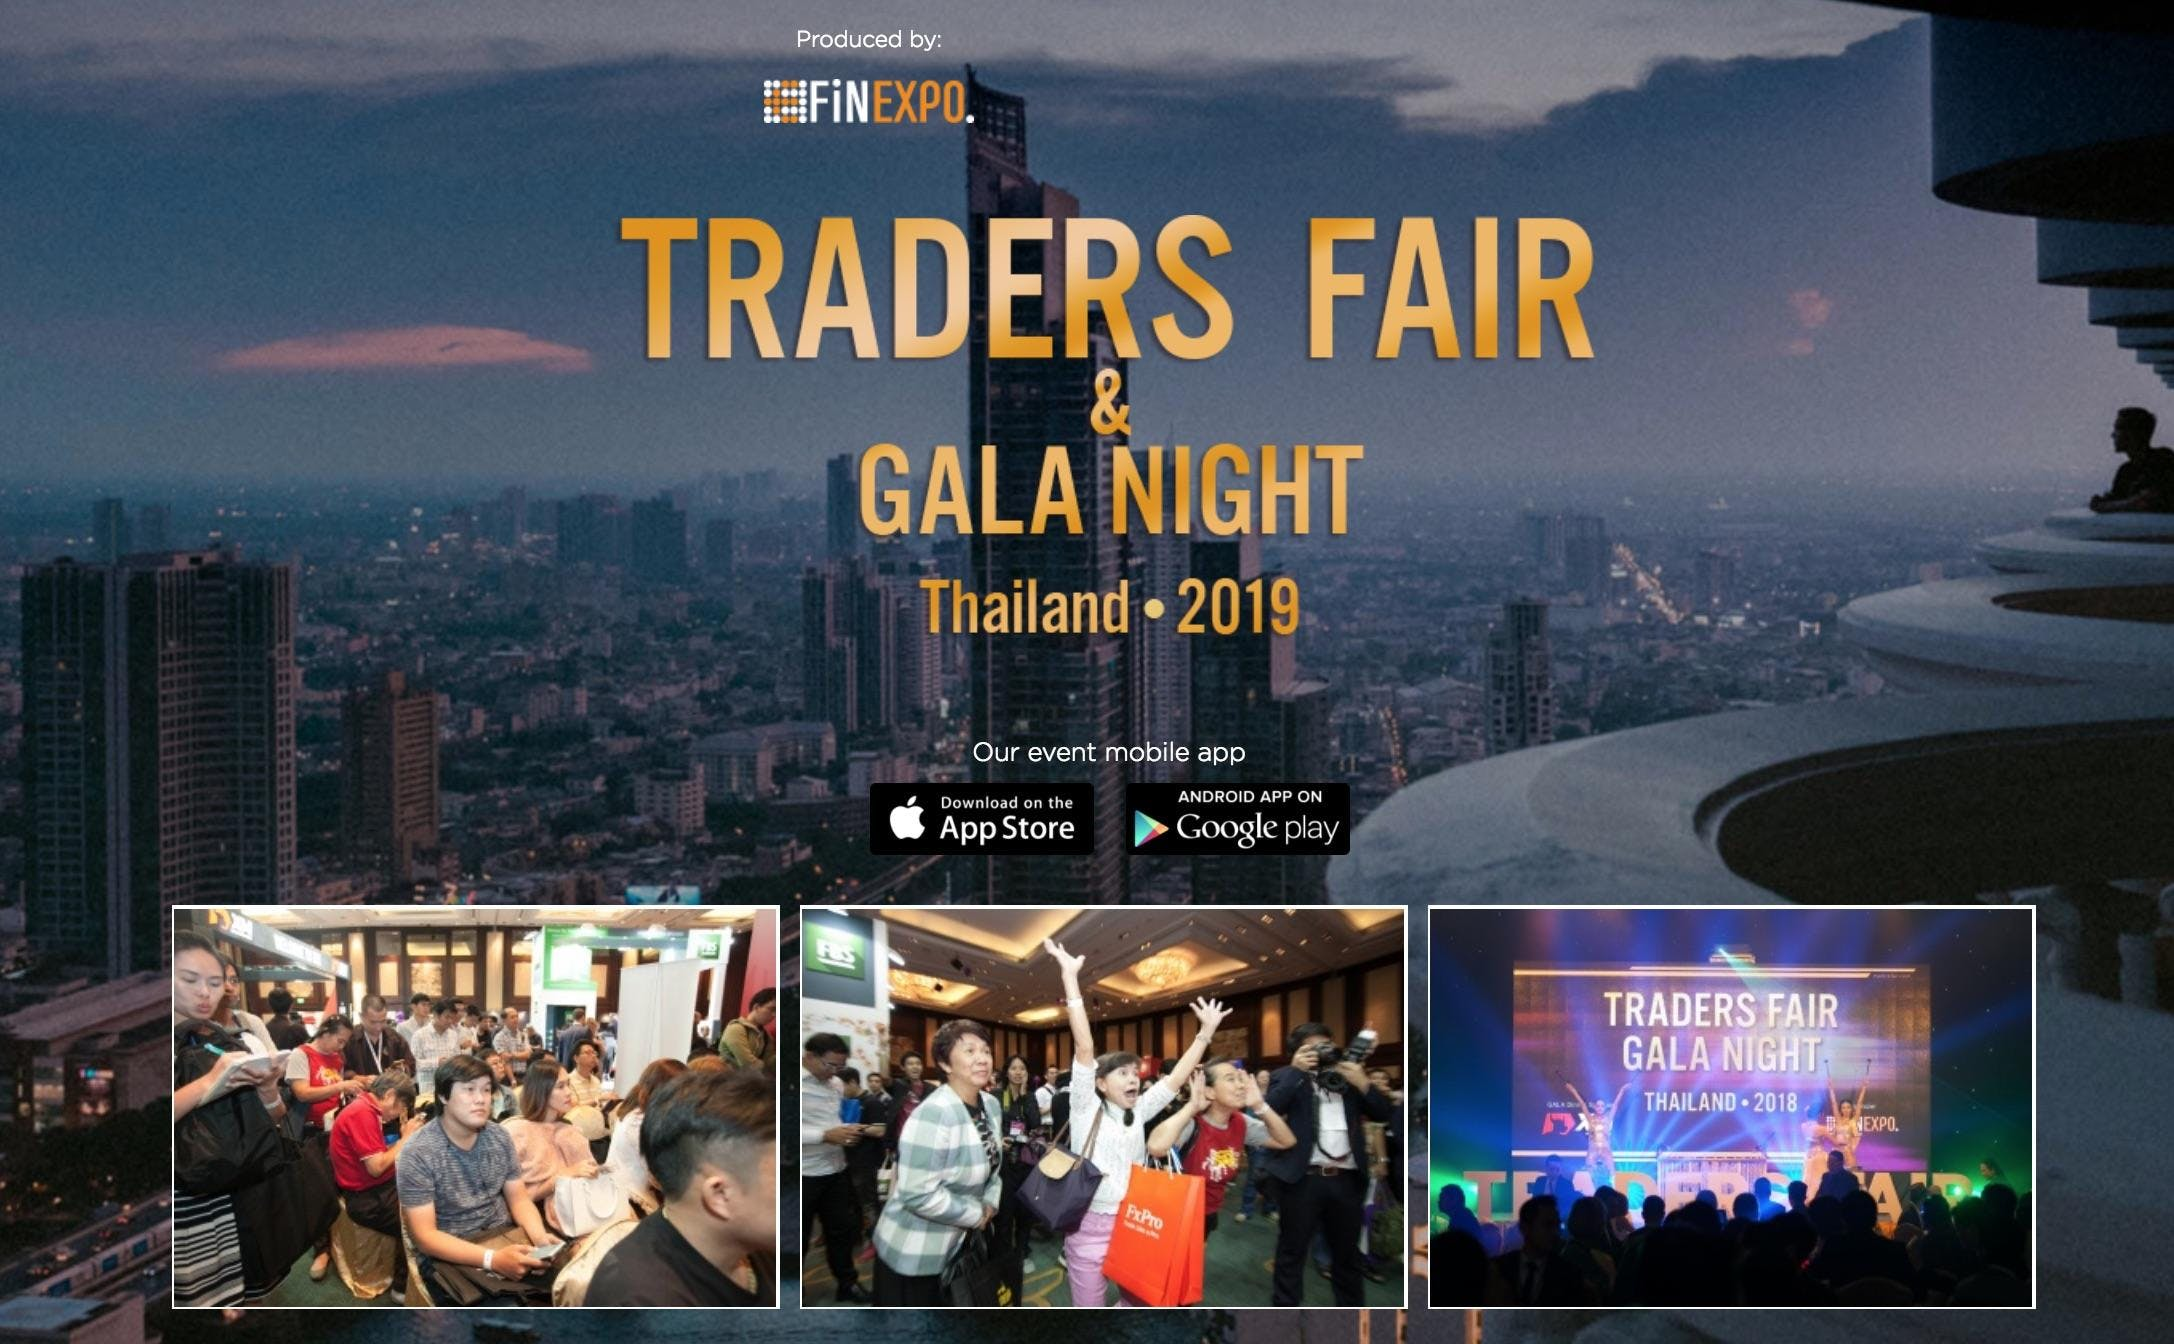 Traders Fair 2019 - Thailand (Financial Event